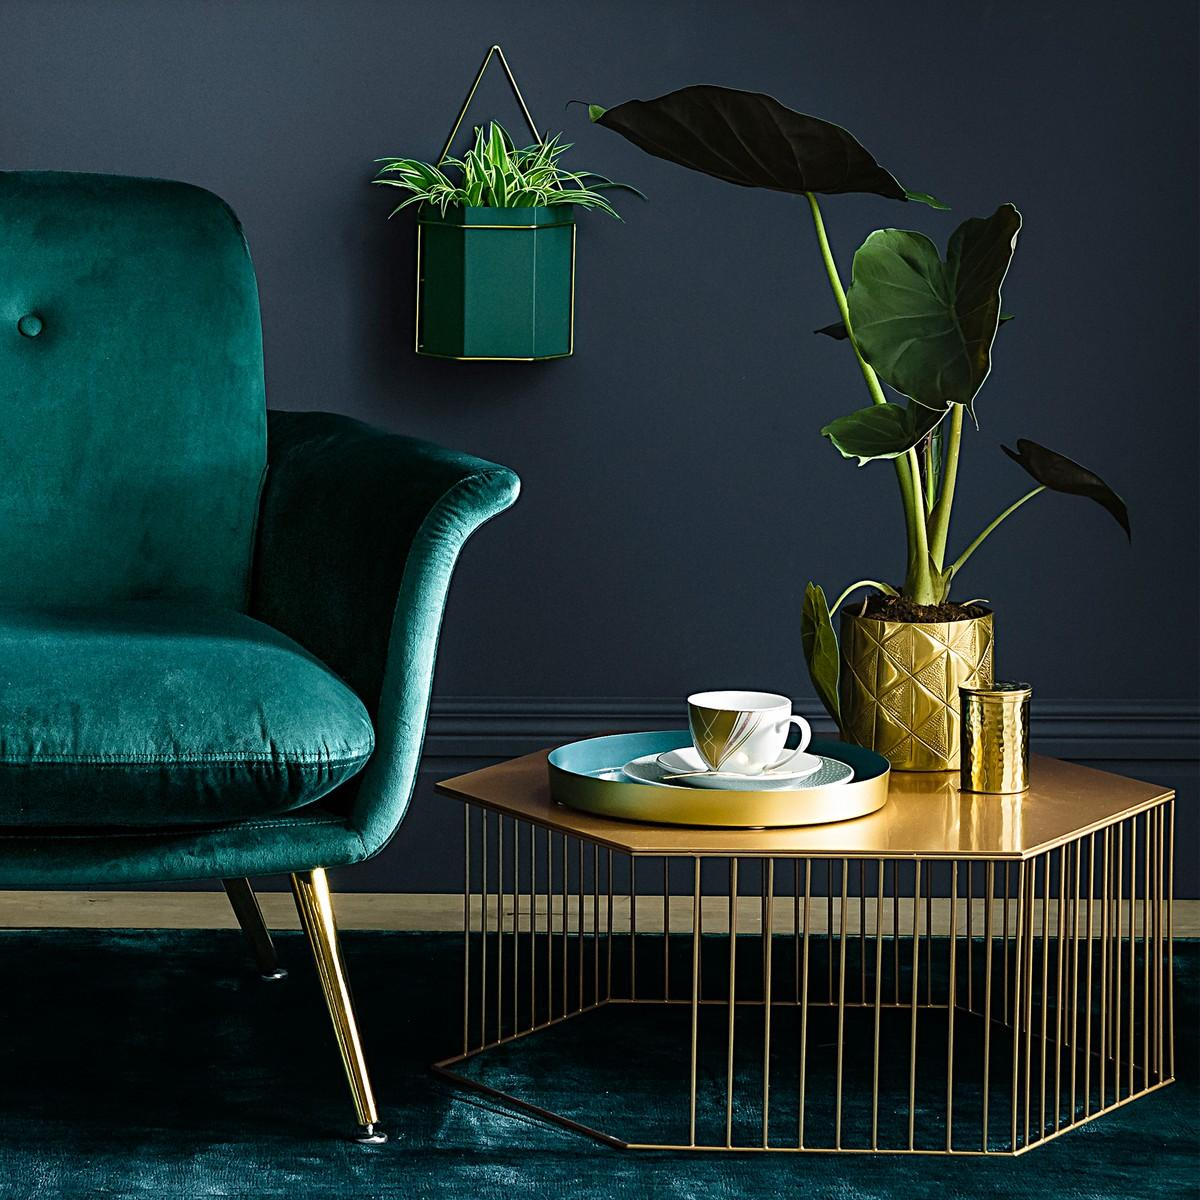 Let's talk about green colour schemes for the perfect green living room